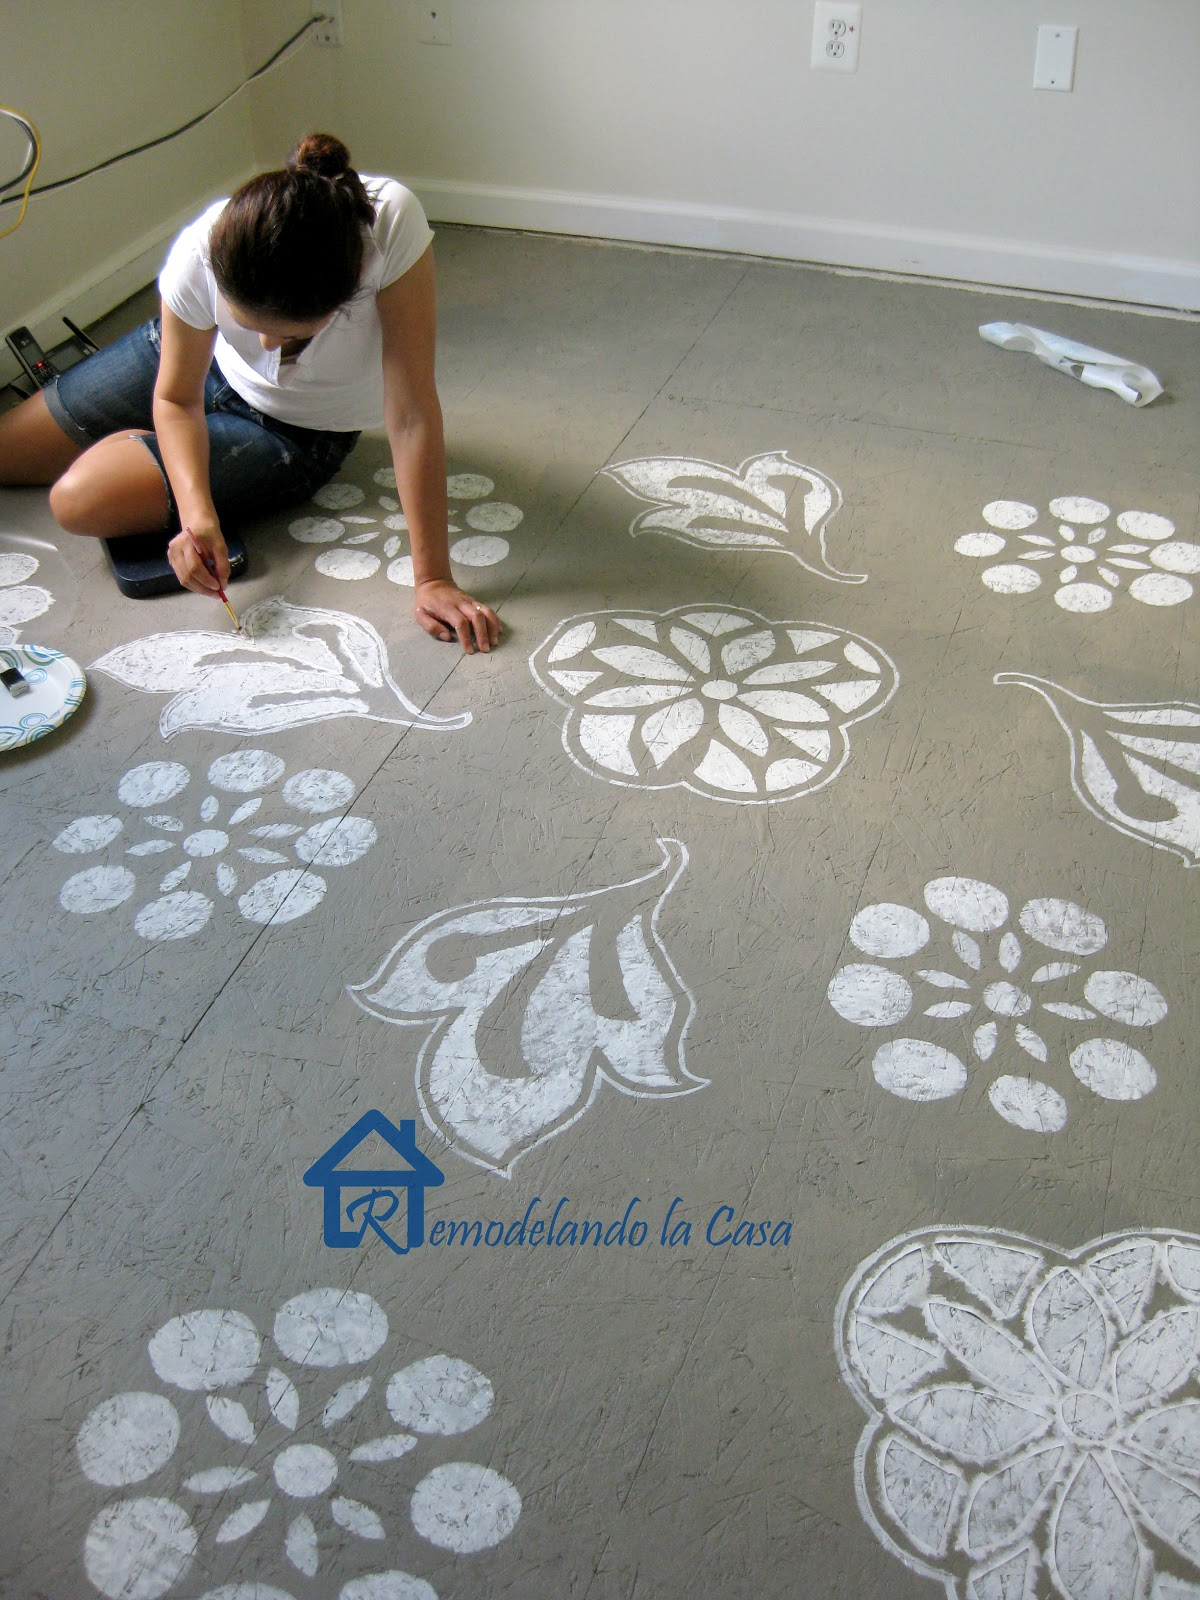 Diy painted designs on floor remodelando la casa for Diy paint